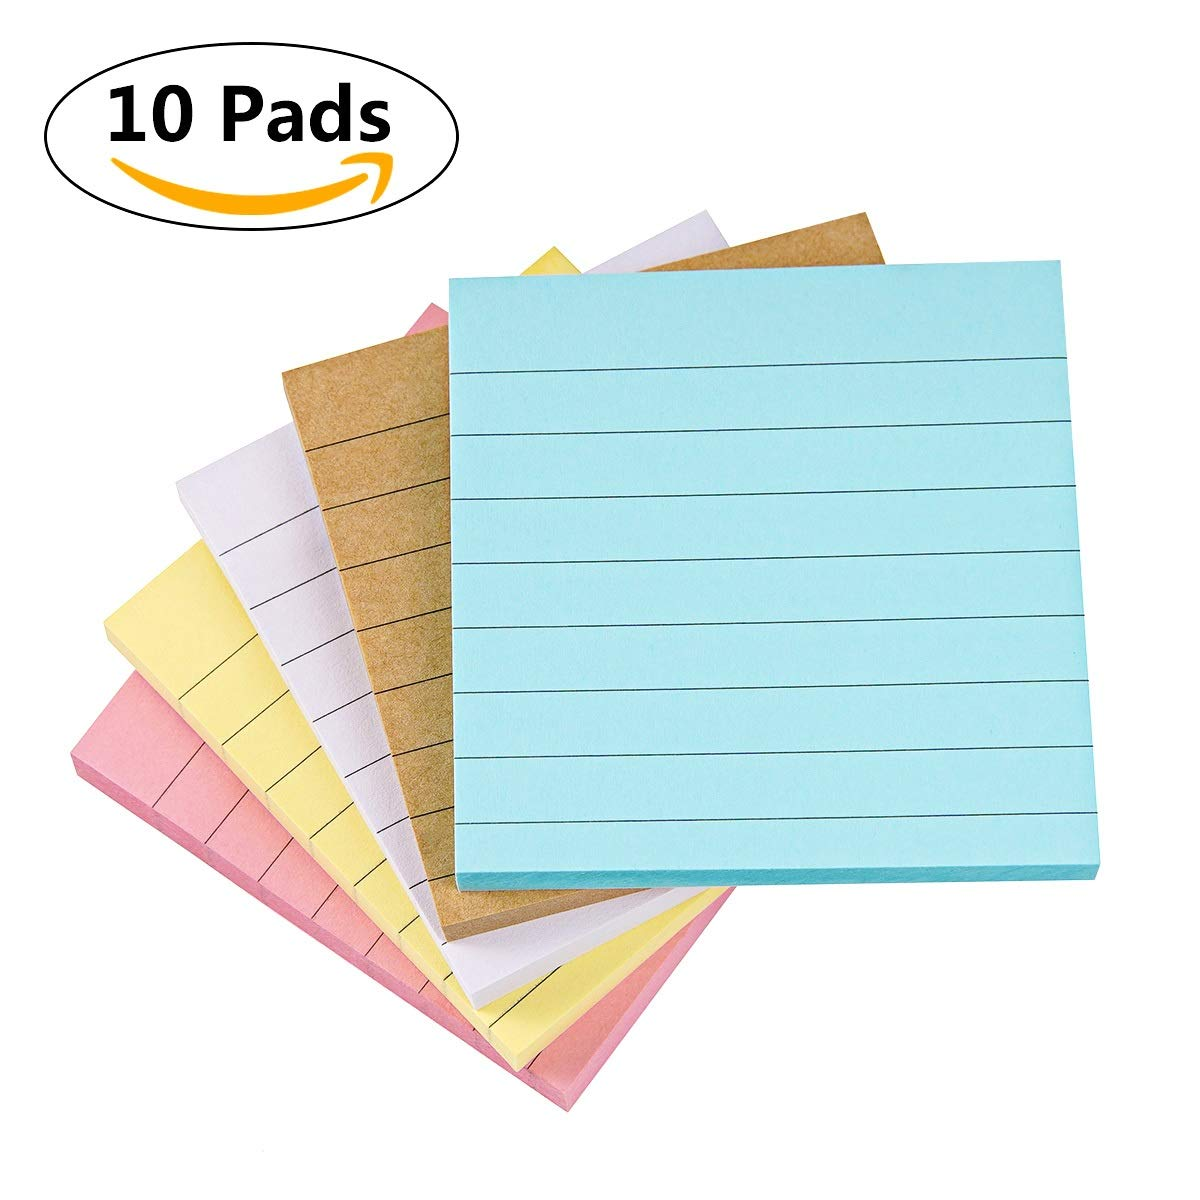 Sticky Notes Lined 3x3, 10 Pads/Pack, 70 Sheets/Pad, 5 Colors, Individually Package Colorful Self-Stick Notes for Home, Office